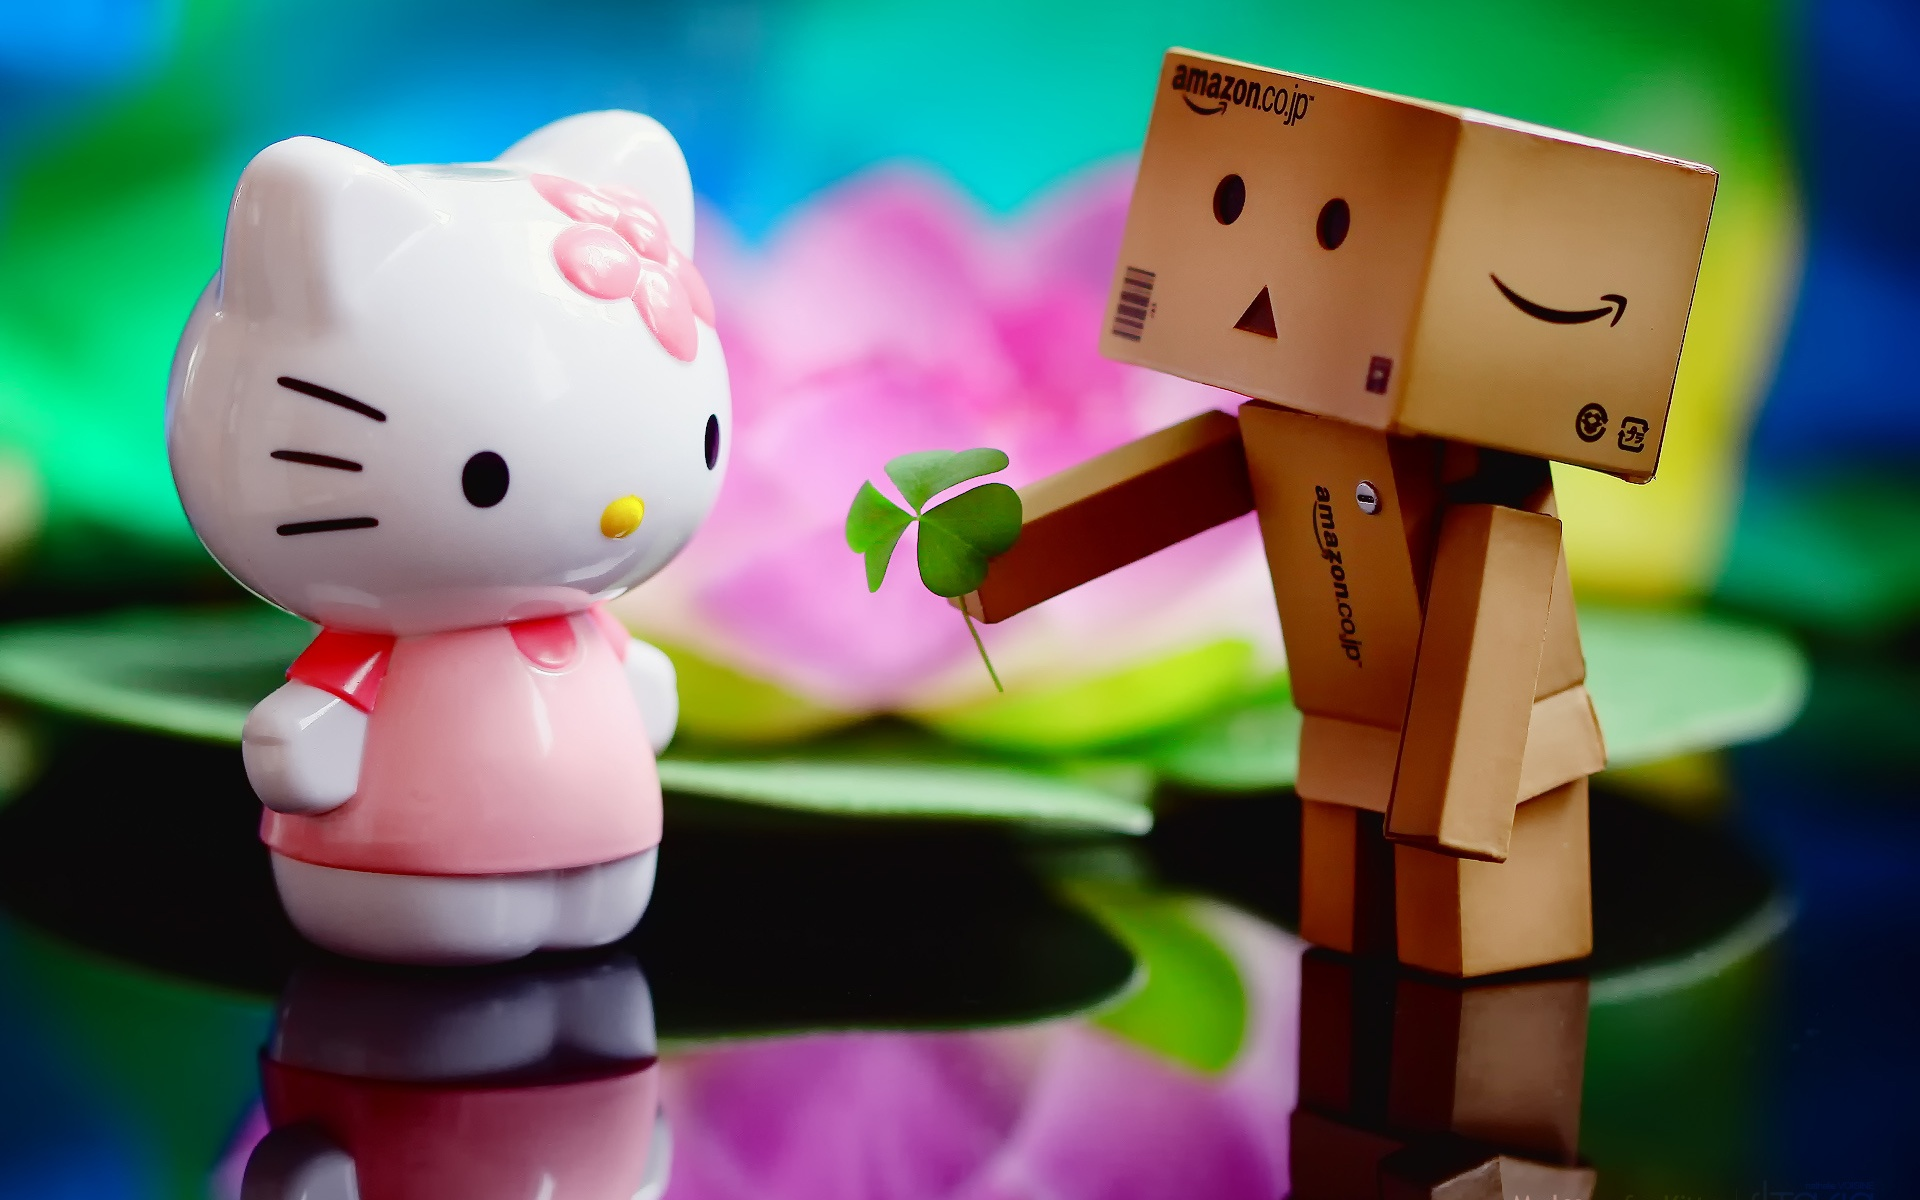 Wallpaper Hello Kitty 1920x1200 Hd Picture Image